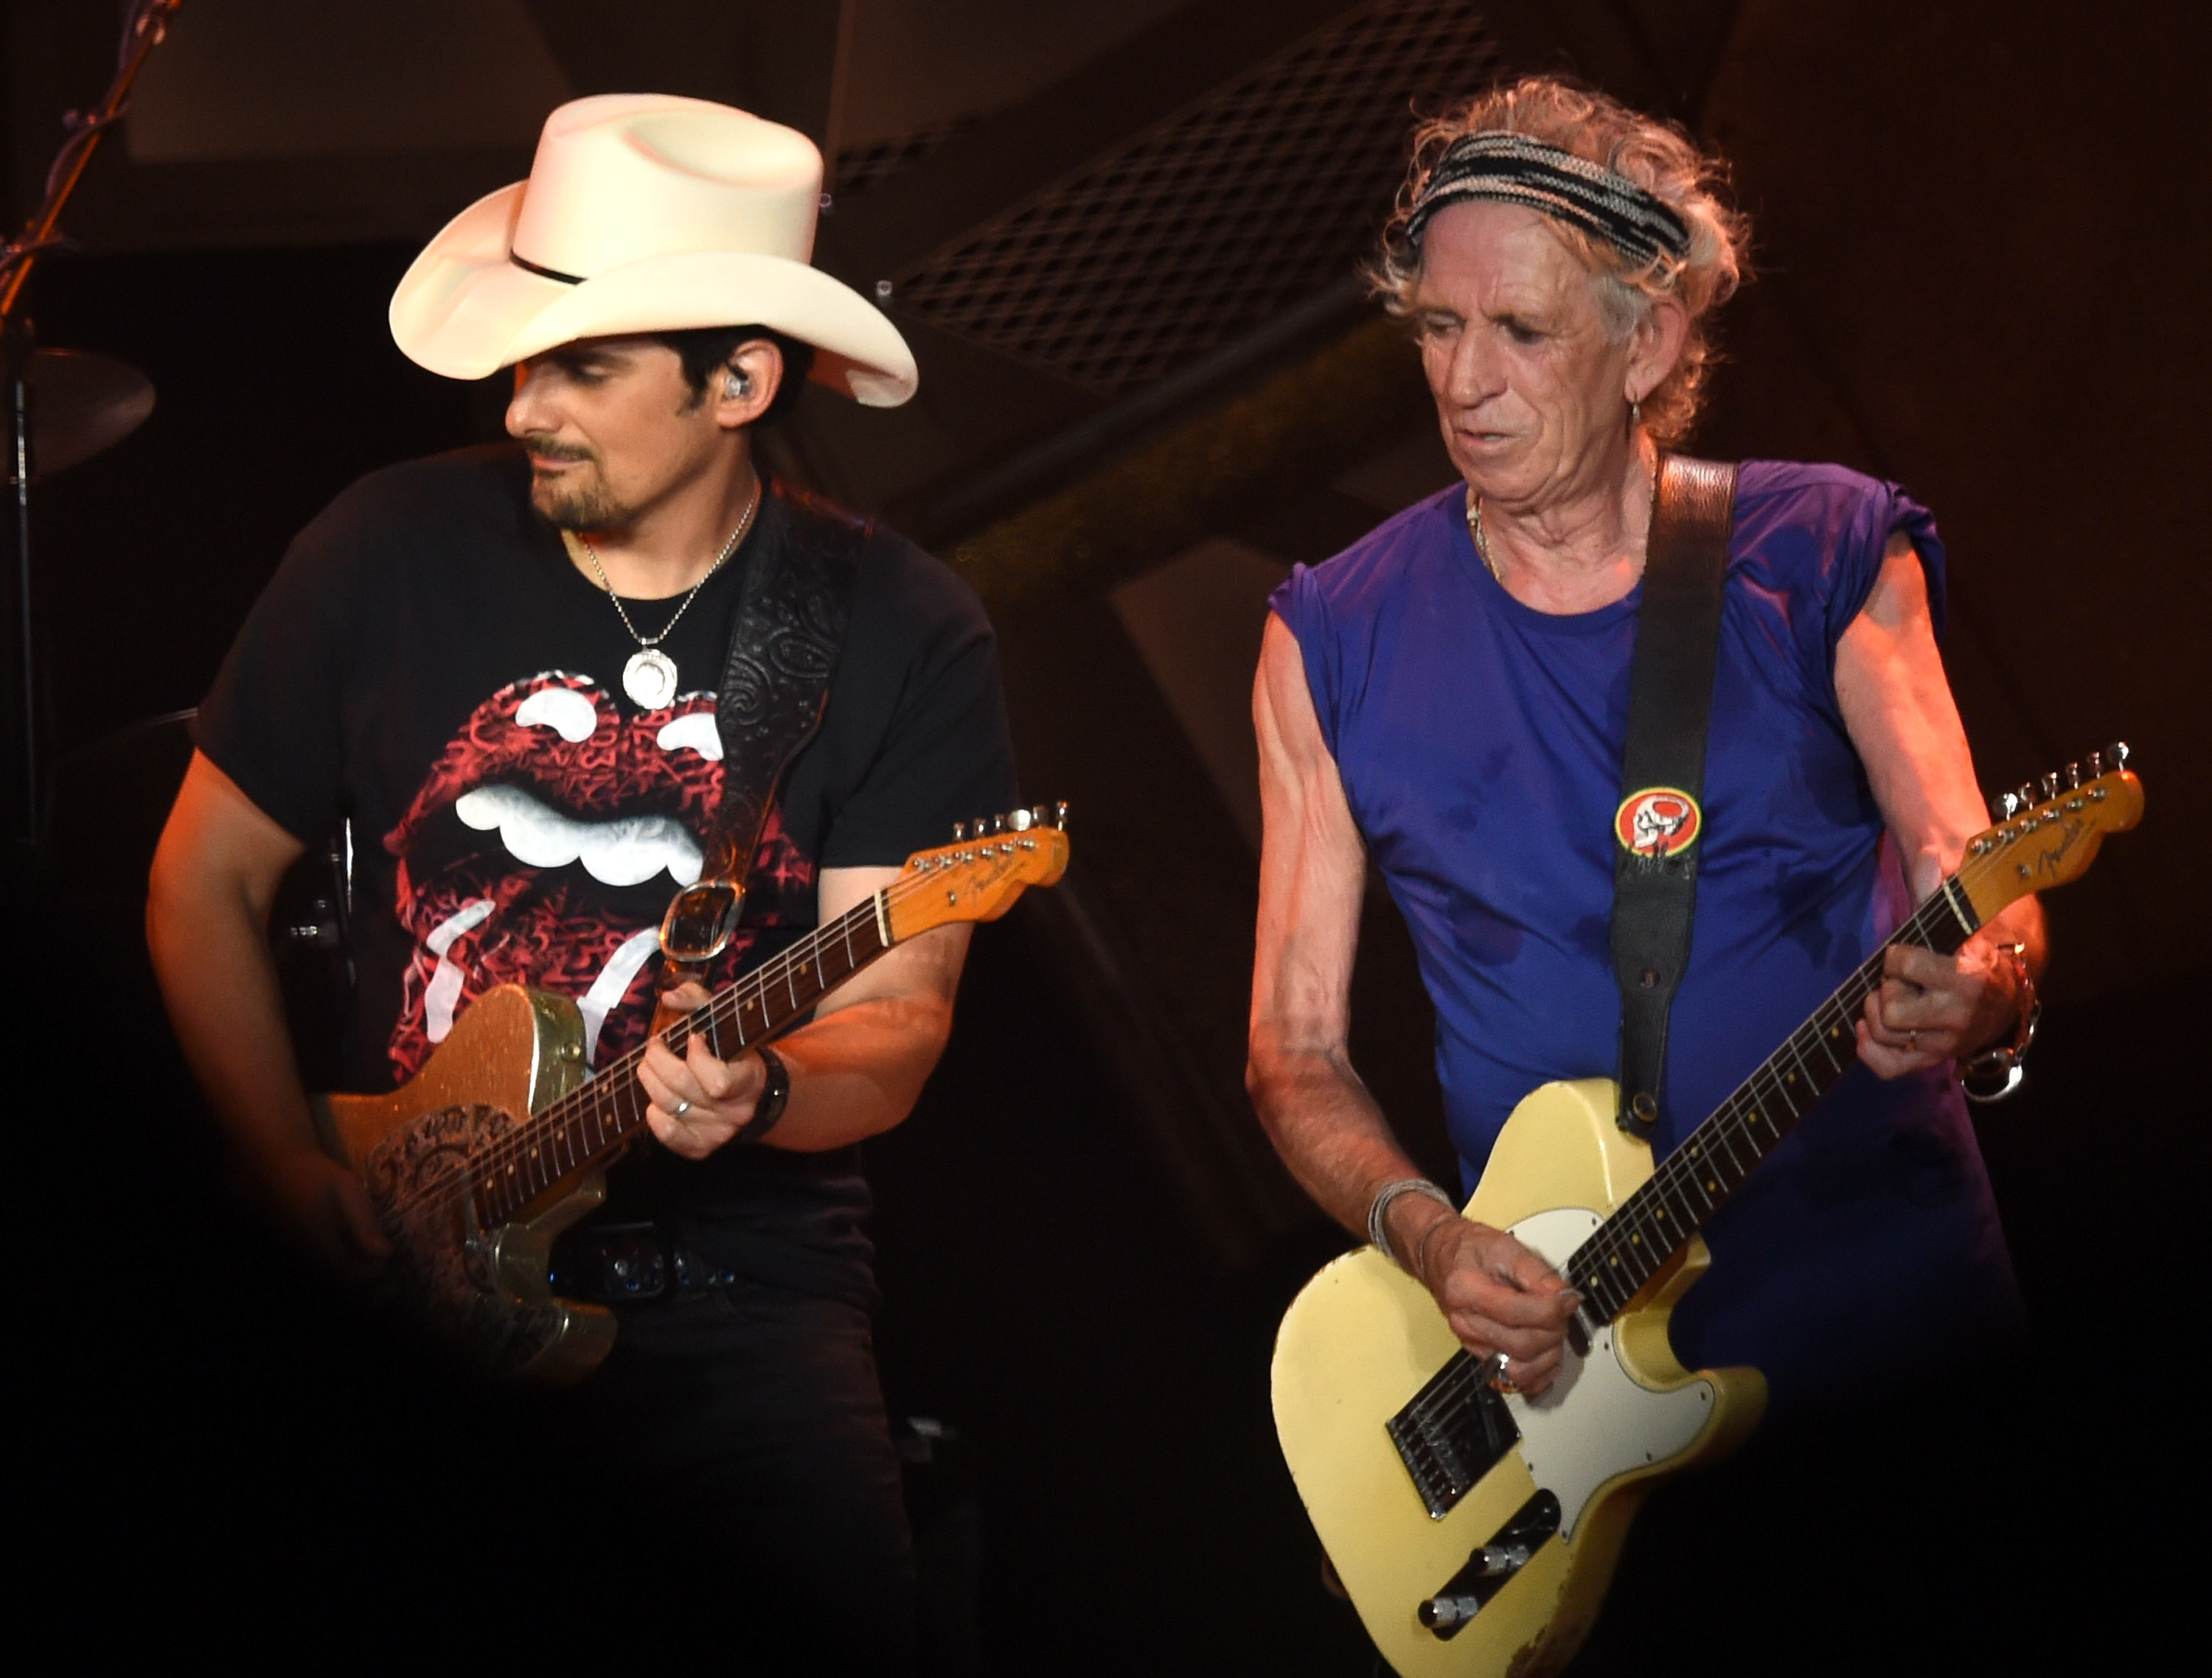 """NASHVILLE, TN - JUNE 17:  Brad Paisley joins Keith Richards of The Rolling Stones during The Rolling Stones North American """"ZIP CODE"""" Tour - Nashville at LP Field on June 17, 2015 in Nashville, Tennessee.  (Photo by Rick Diamond/Getty Images,)"""